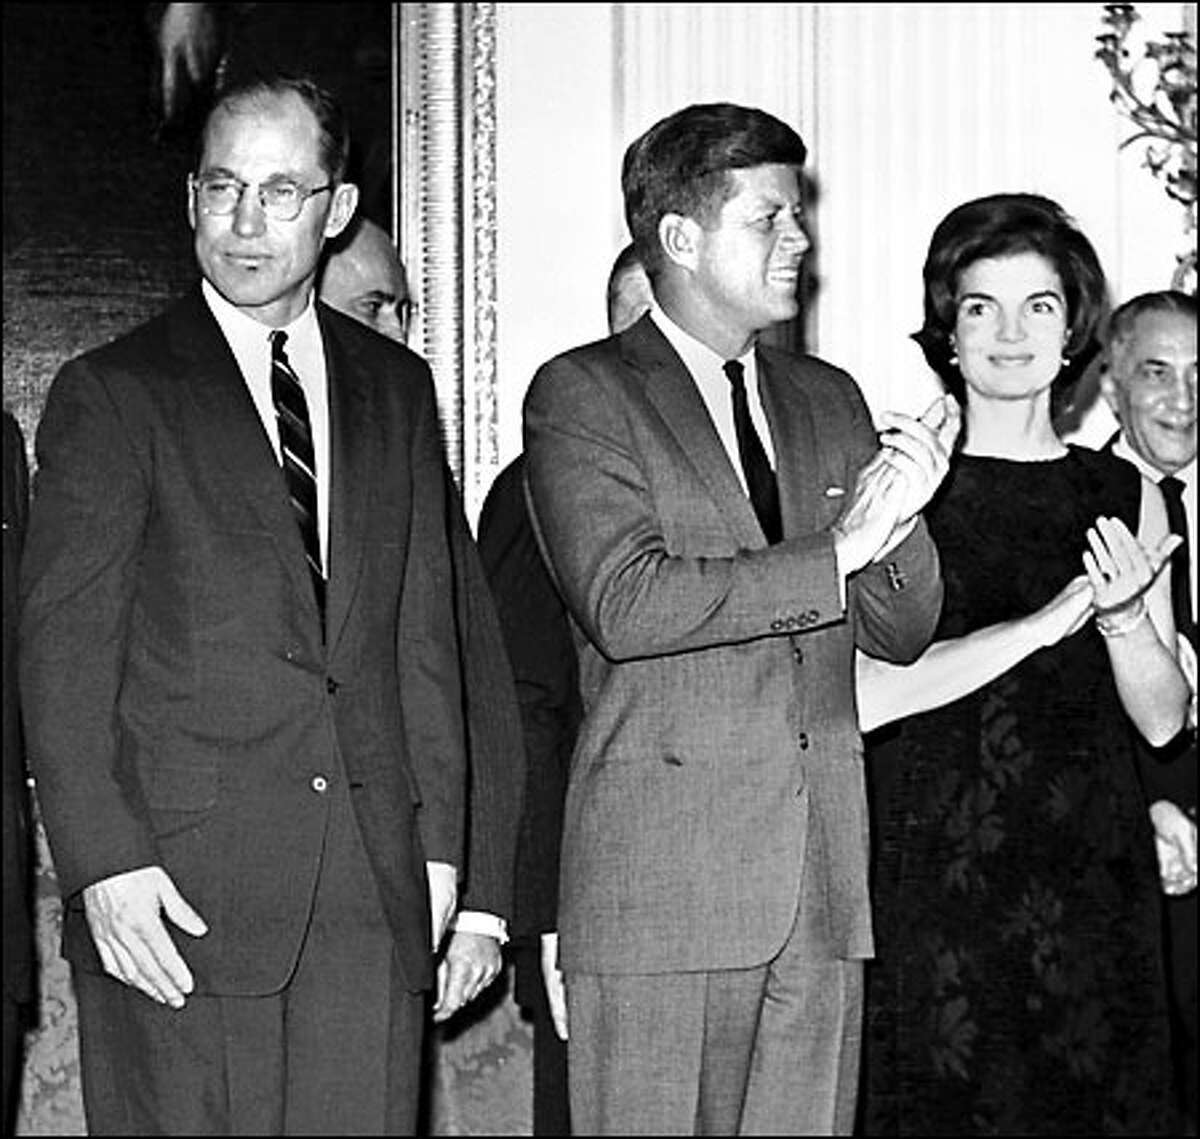 Byron White, left, is pictured with President Kennedy and his wife, Jacqueline, at the White House. Kennedy appointed White a justice in 1962.